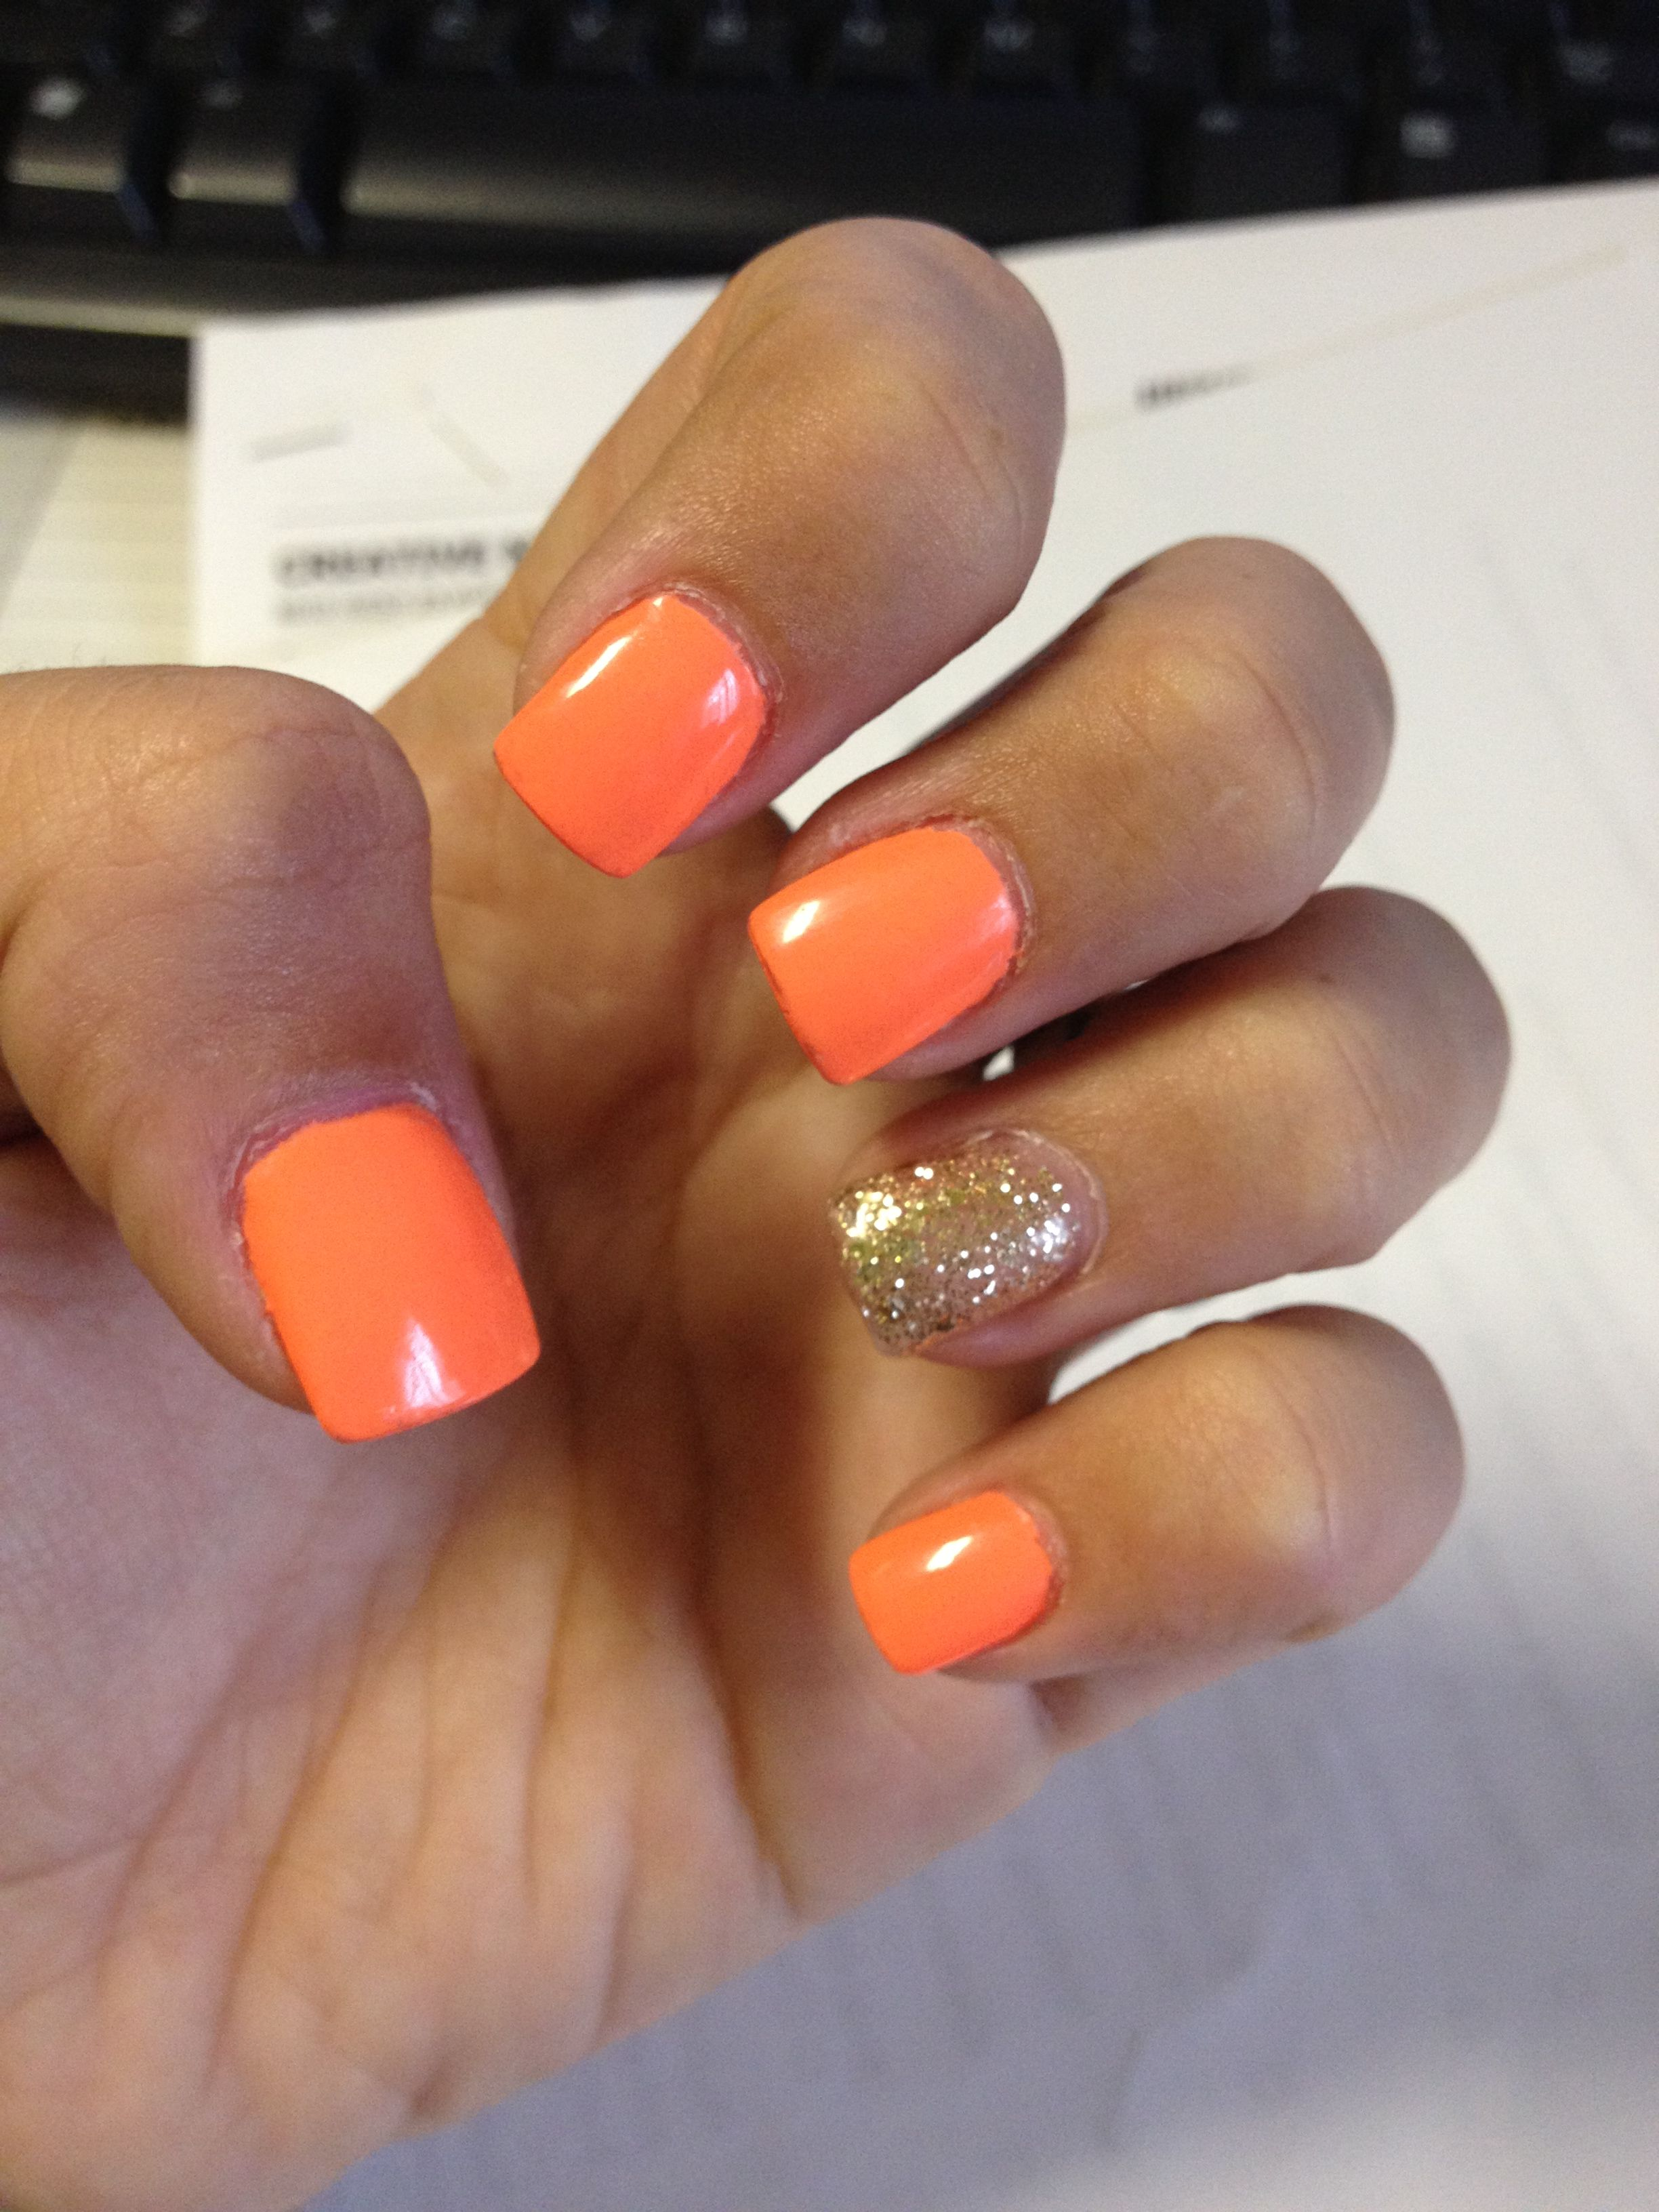 Neon Orange With Gold Glitter Gel Nails Nail Icious Pinterest